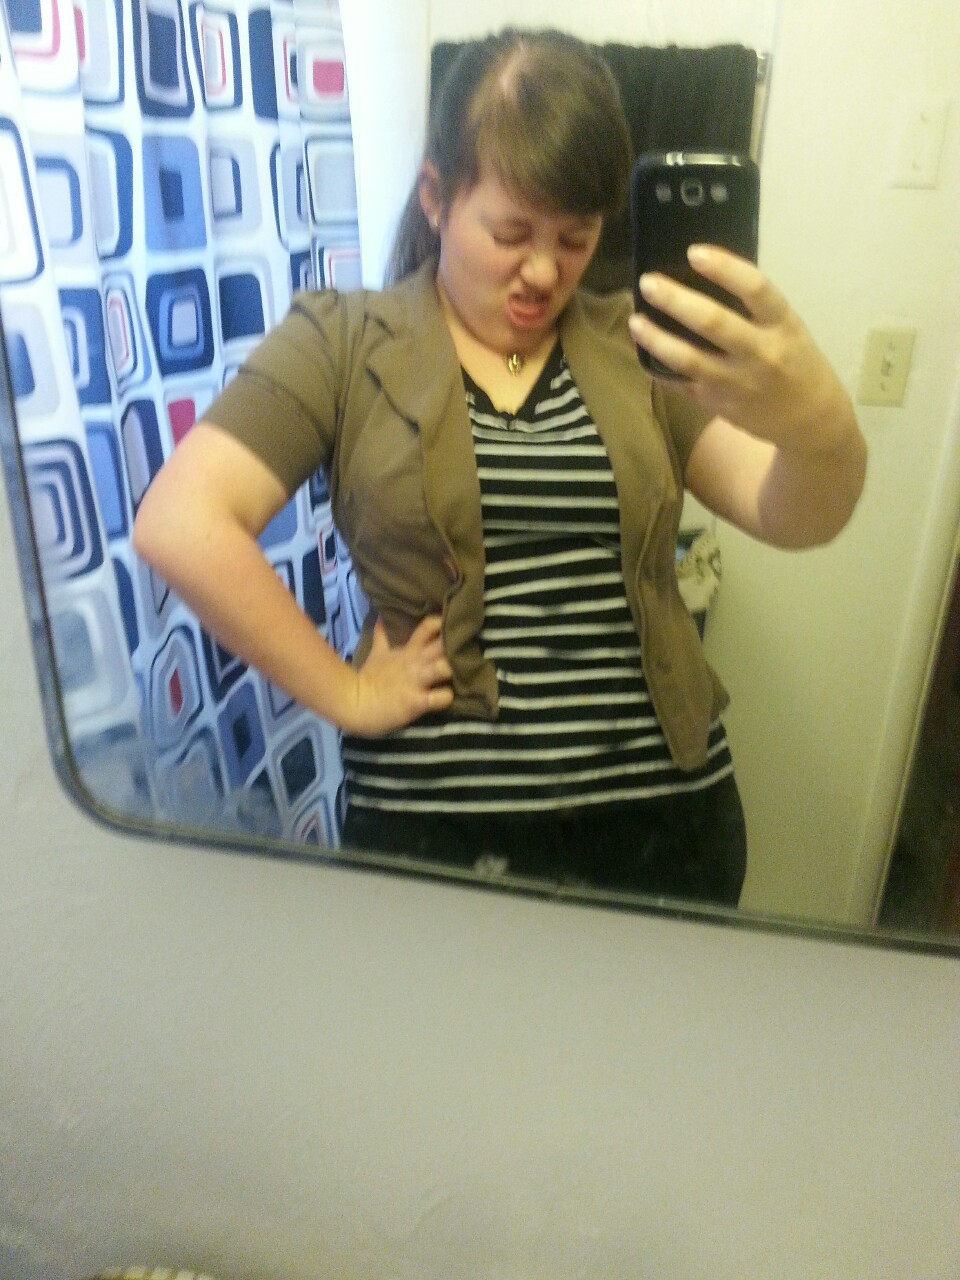 I went to the fair today. This is what I wore.